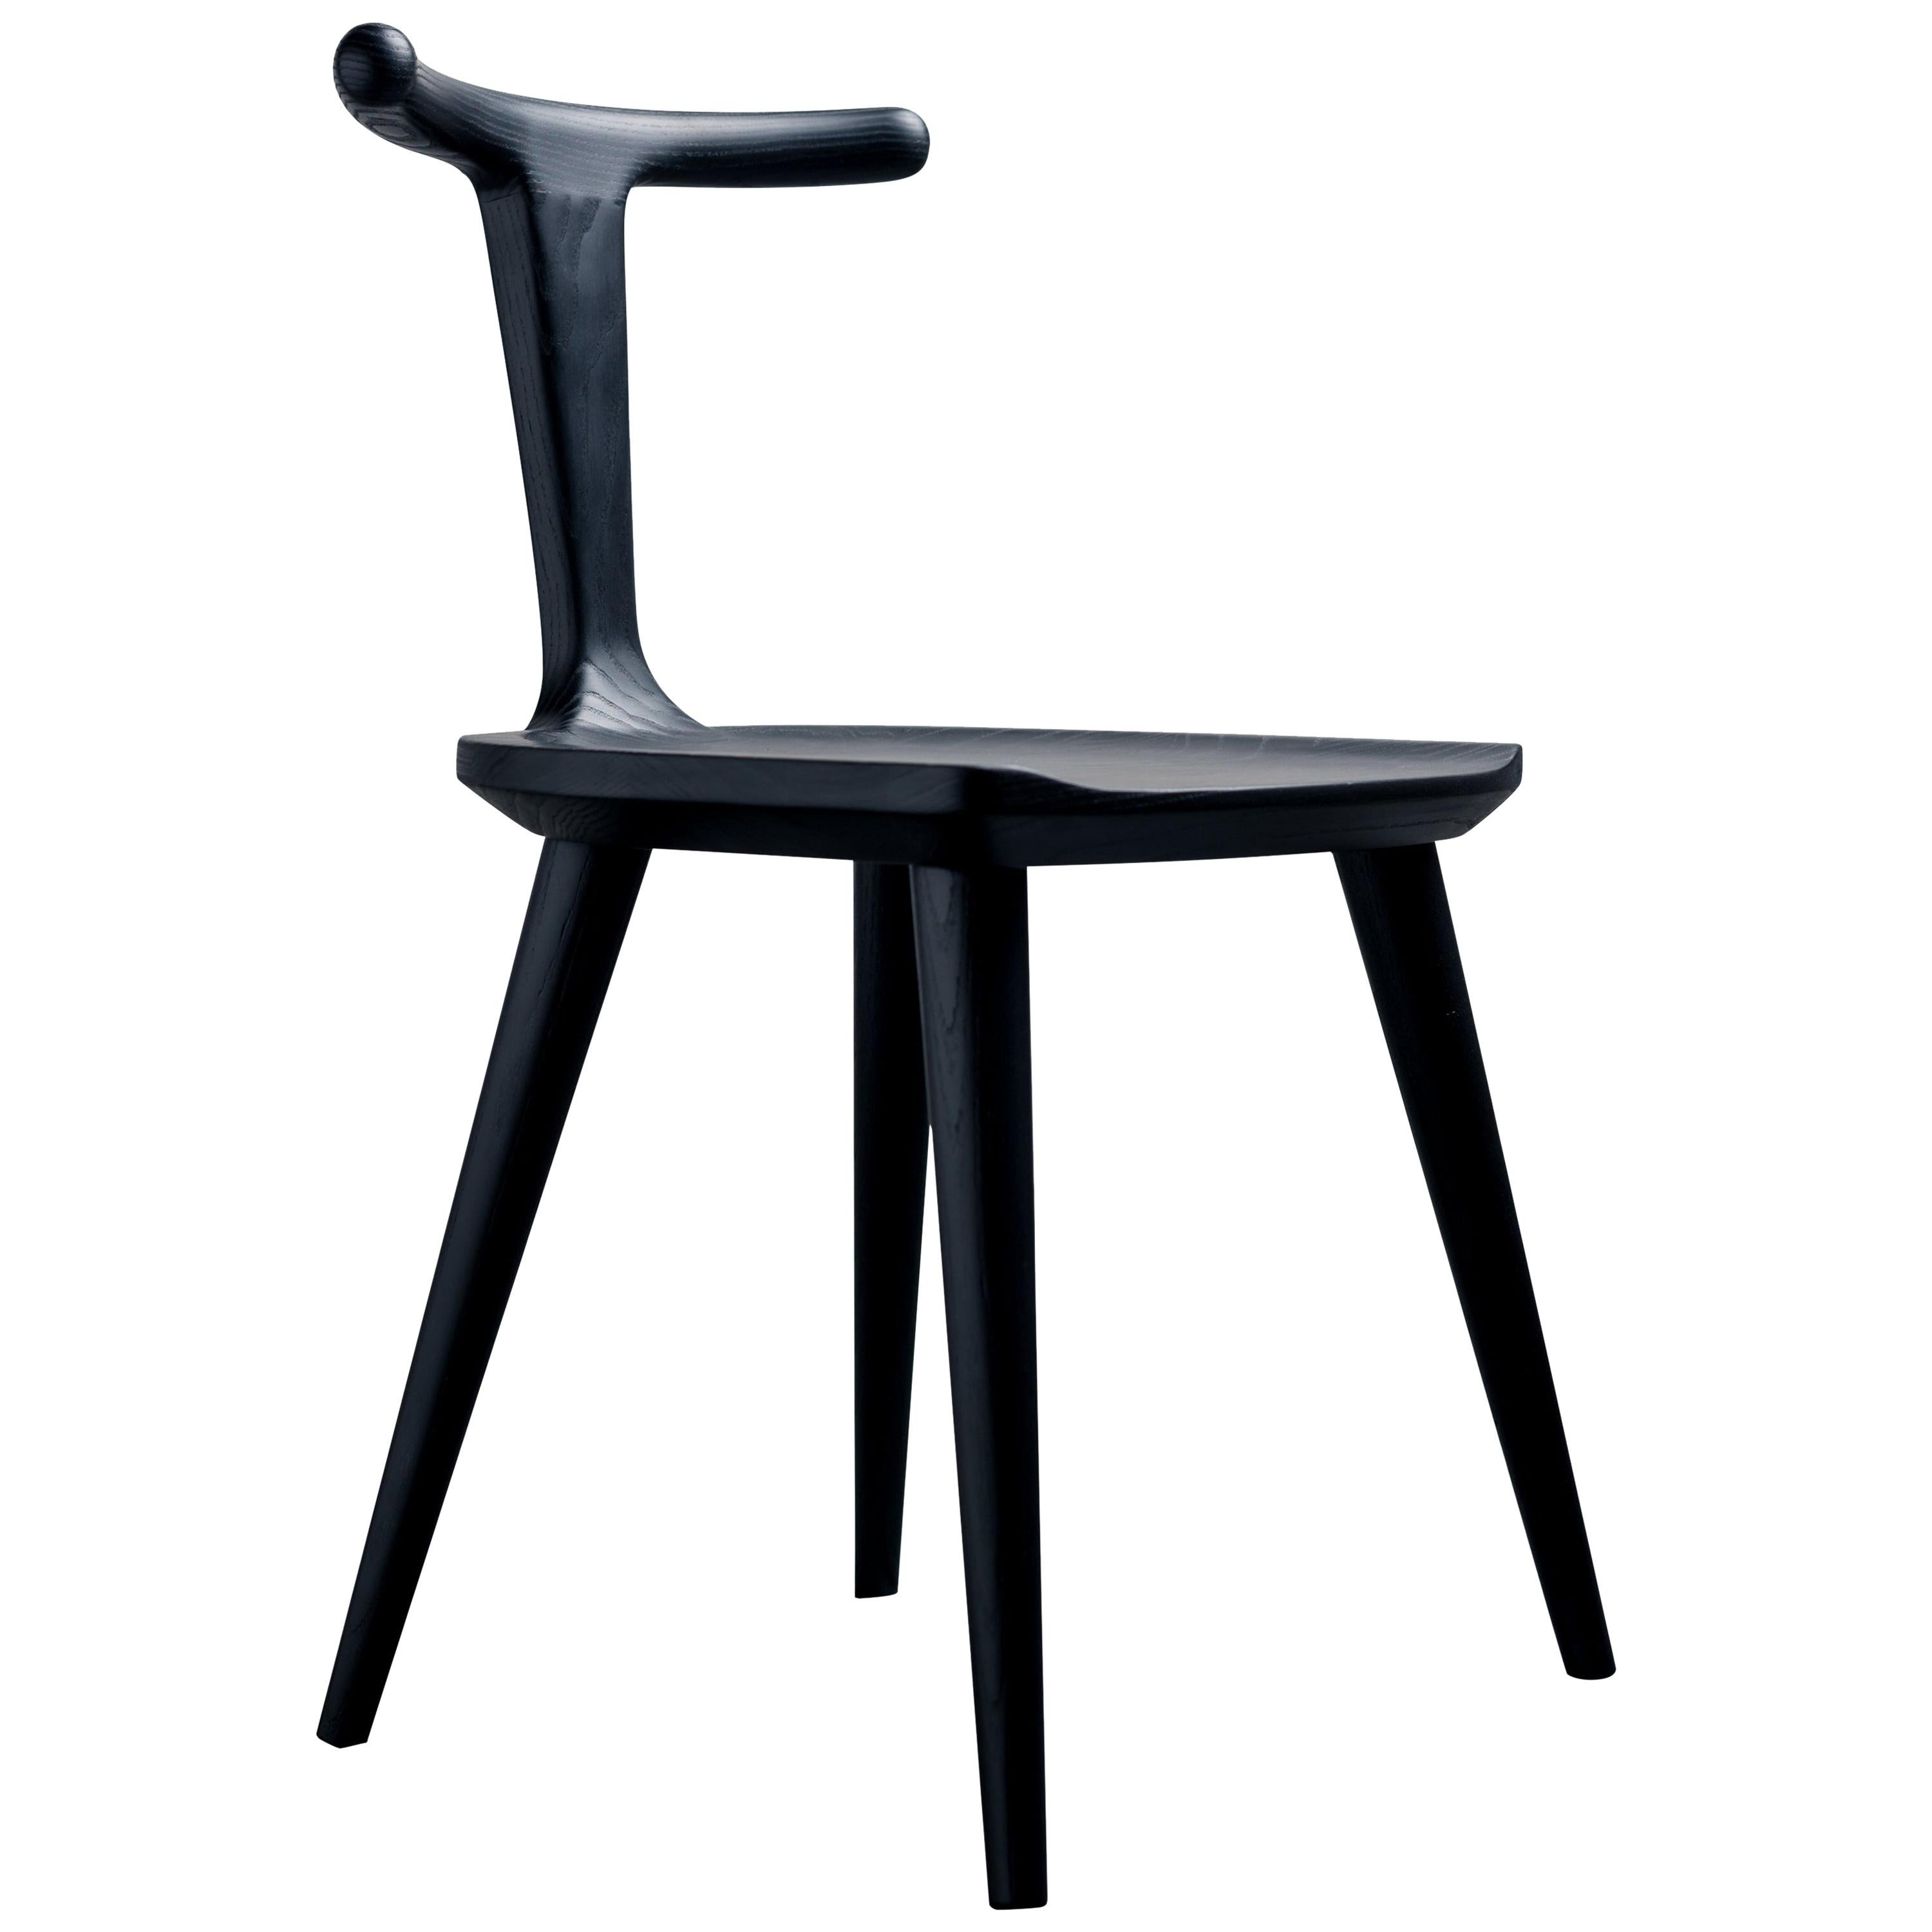 Oxbend Chair, Dining Seat in Black Charcoal Ashwood by Fernweh Woodworking